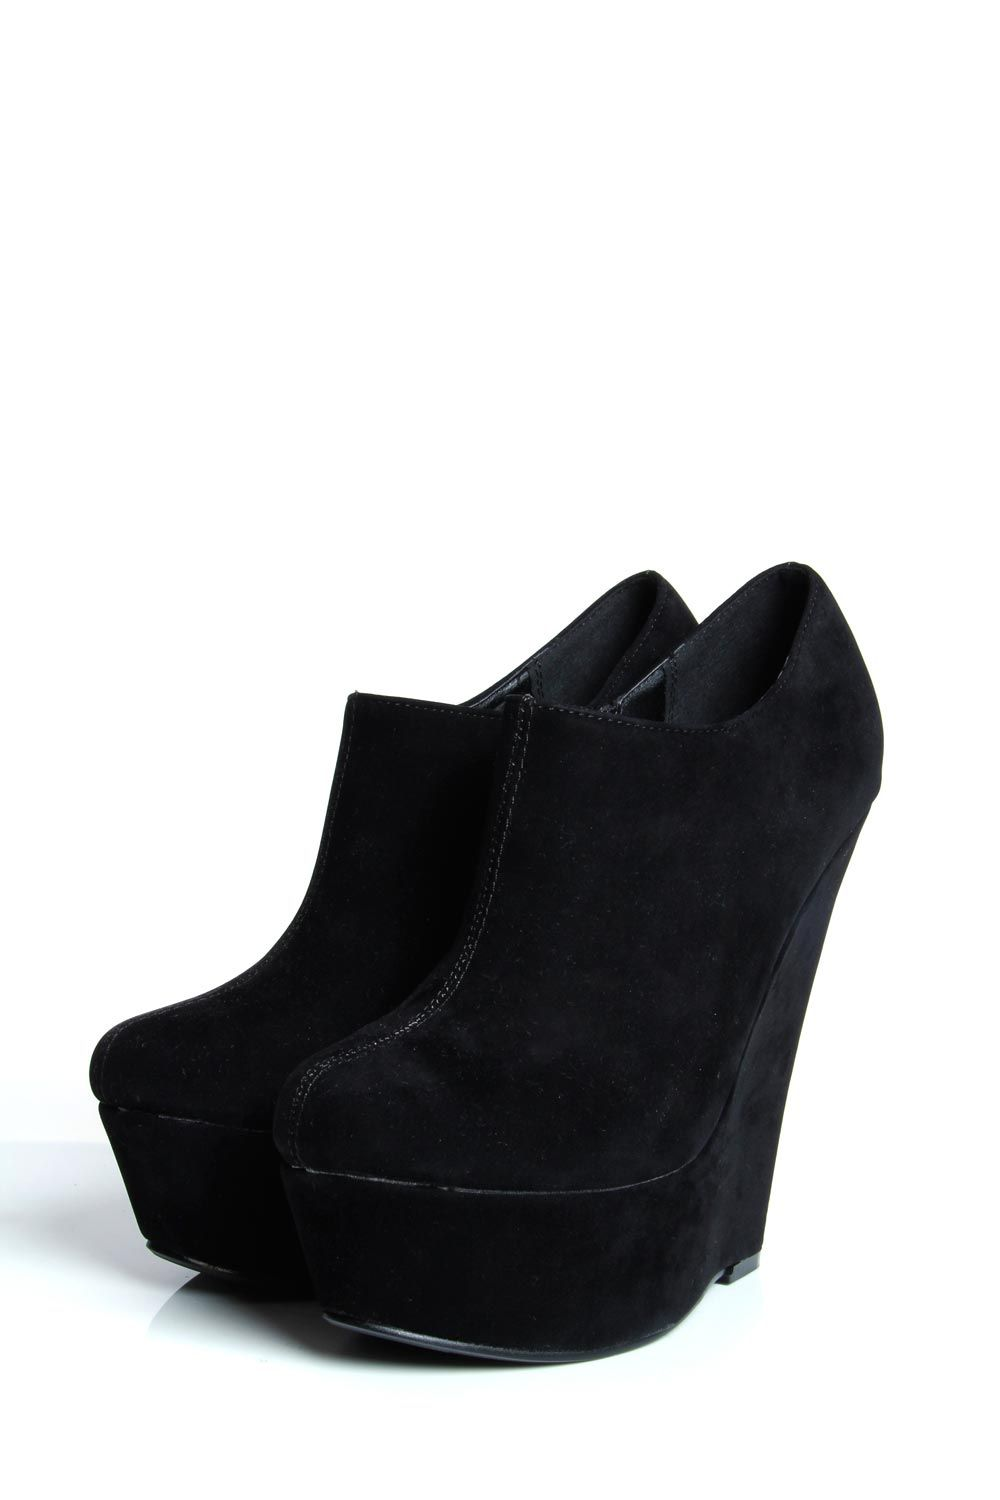 dccebf50a8 Iona Black Suedette Closed Toe Wedge | Cute things I need to buy